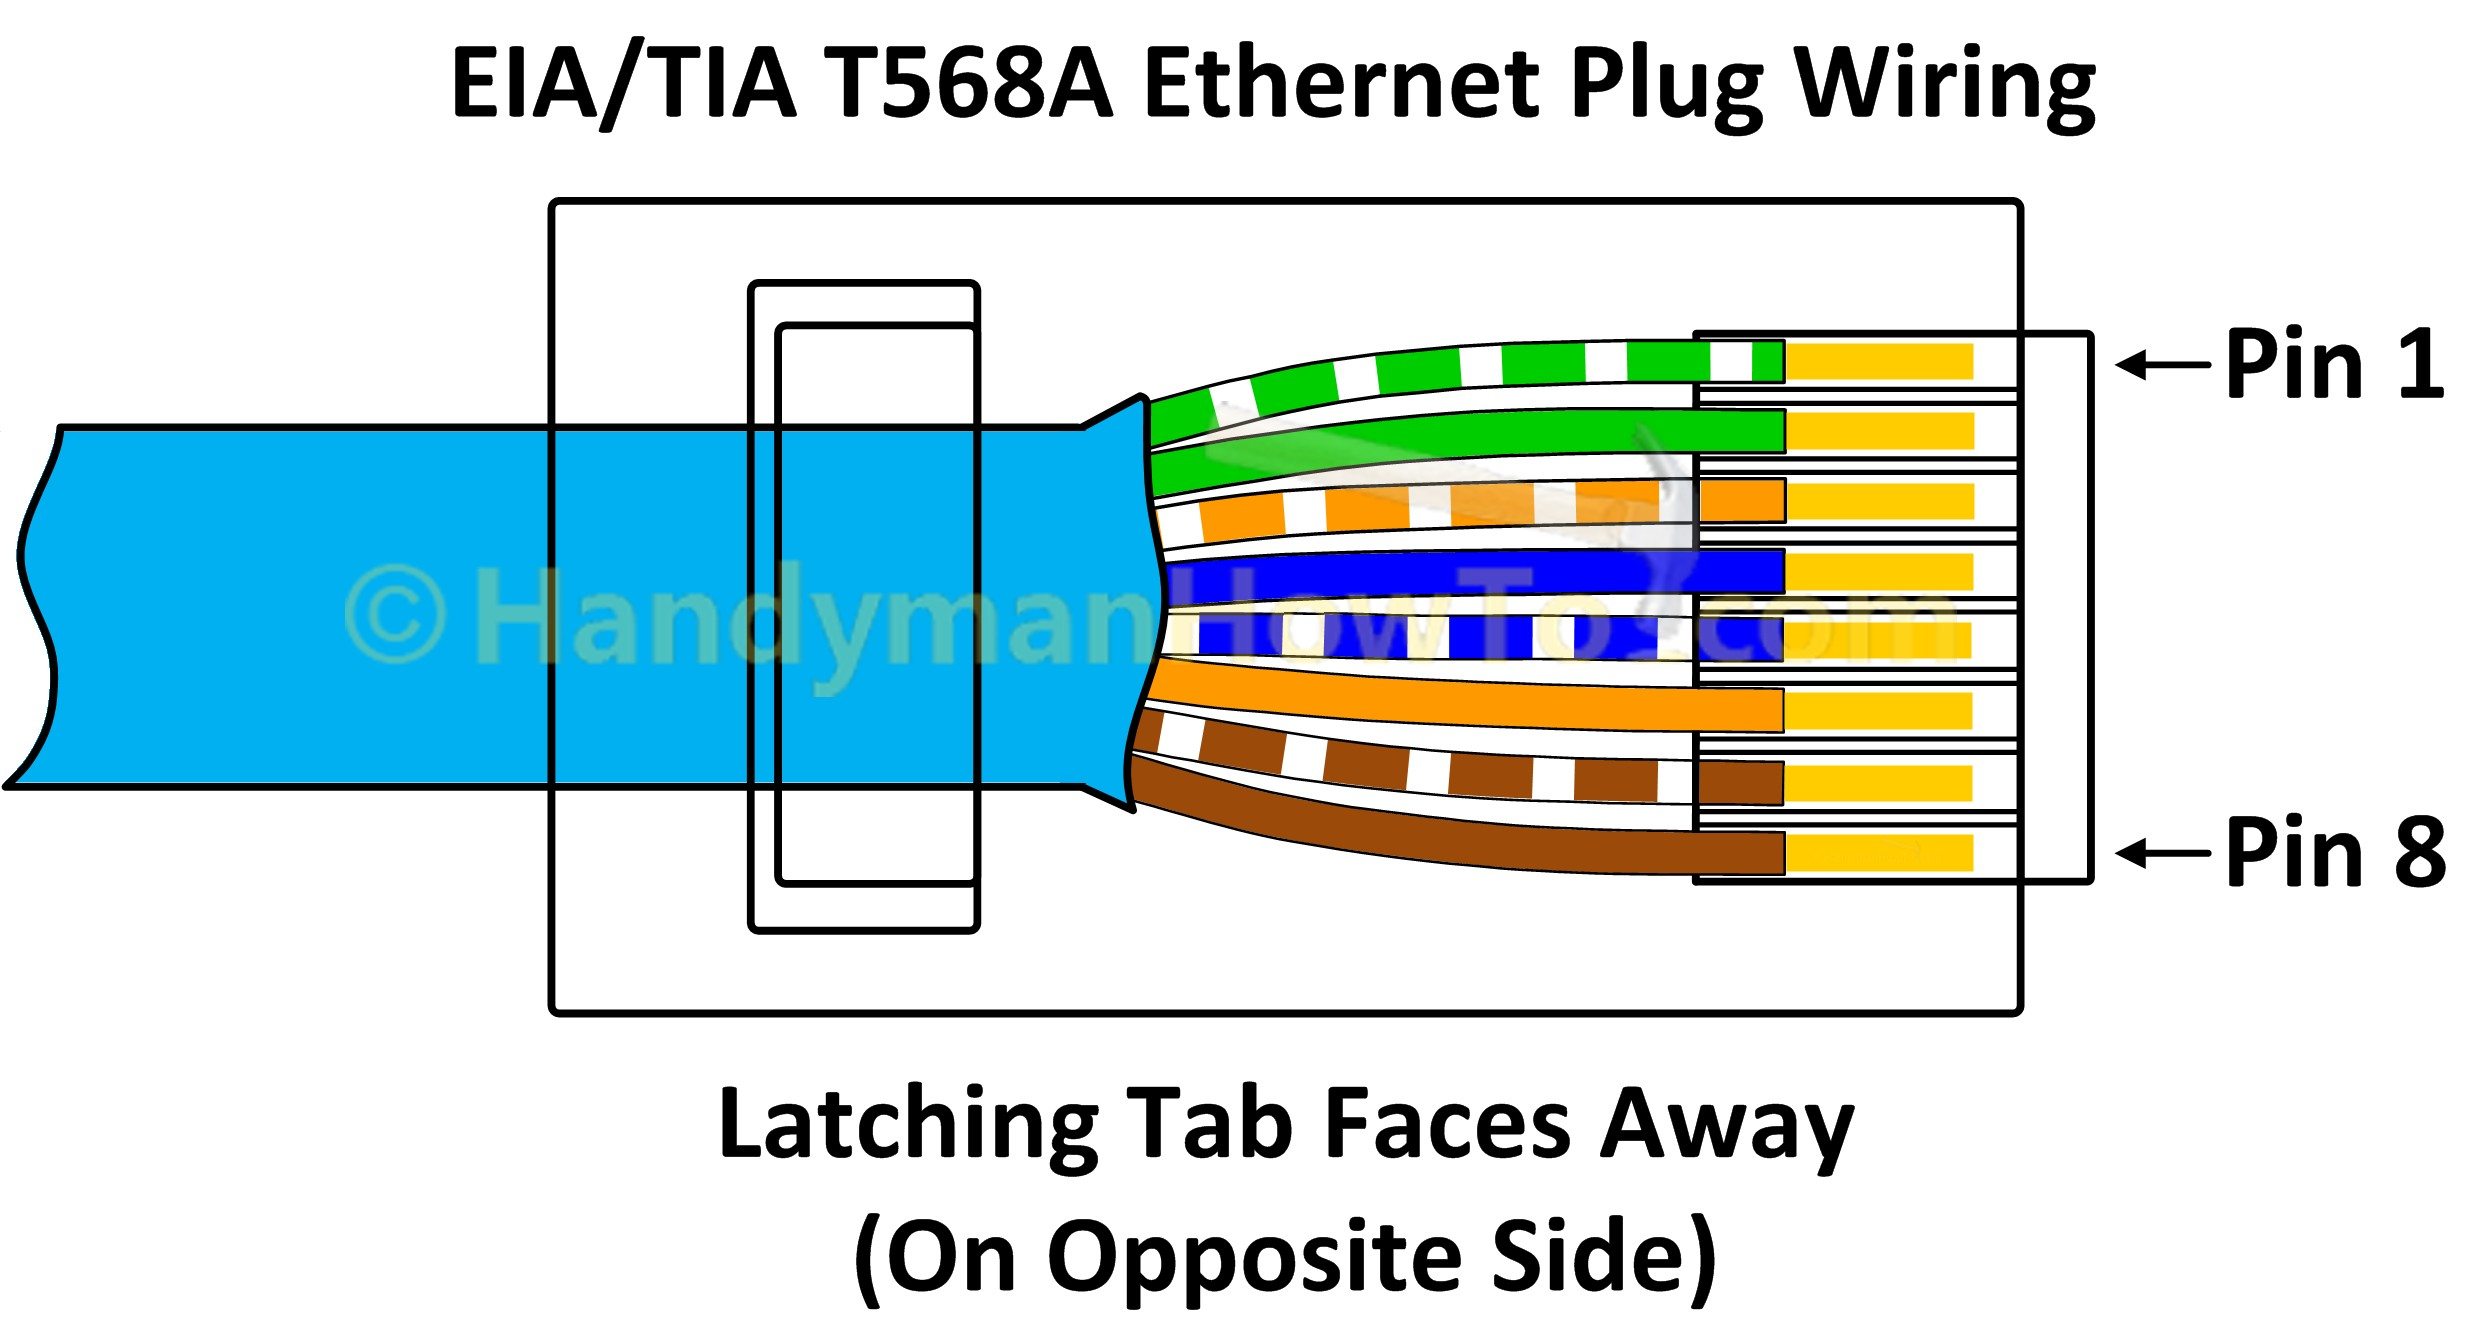 Cat 6 Wiring Diagram Best Making Cat5 Cables Everything You Need to Know About Of Cat 6 Wiring Diagram